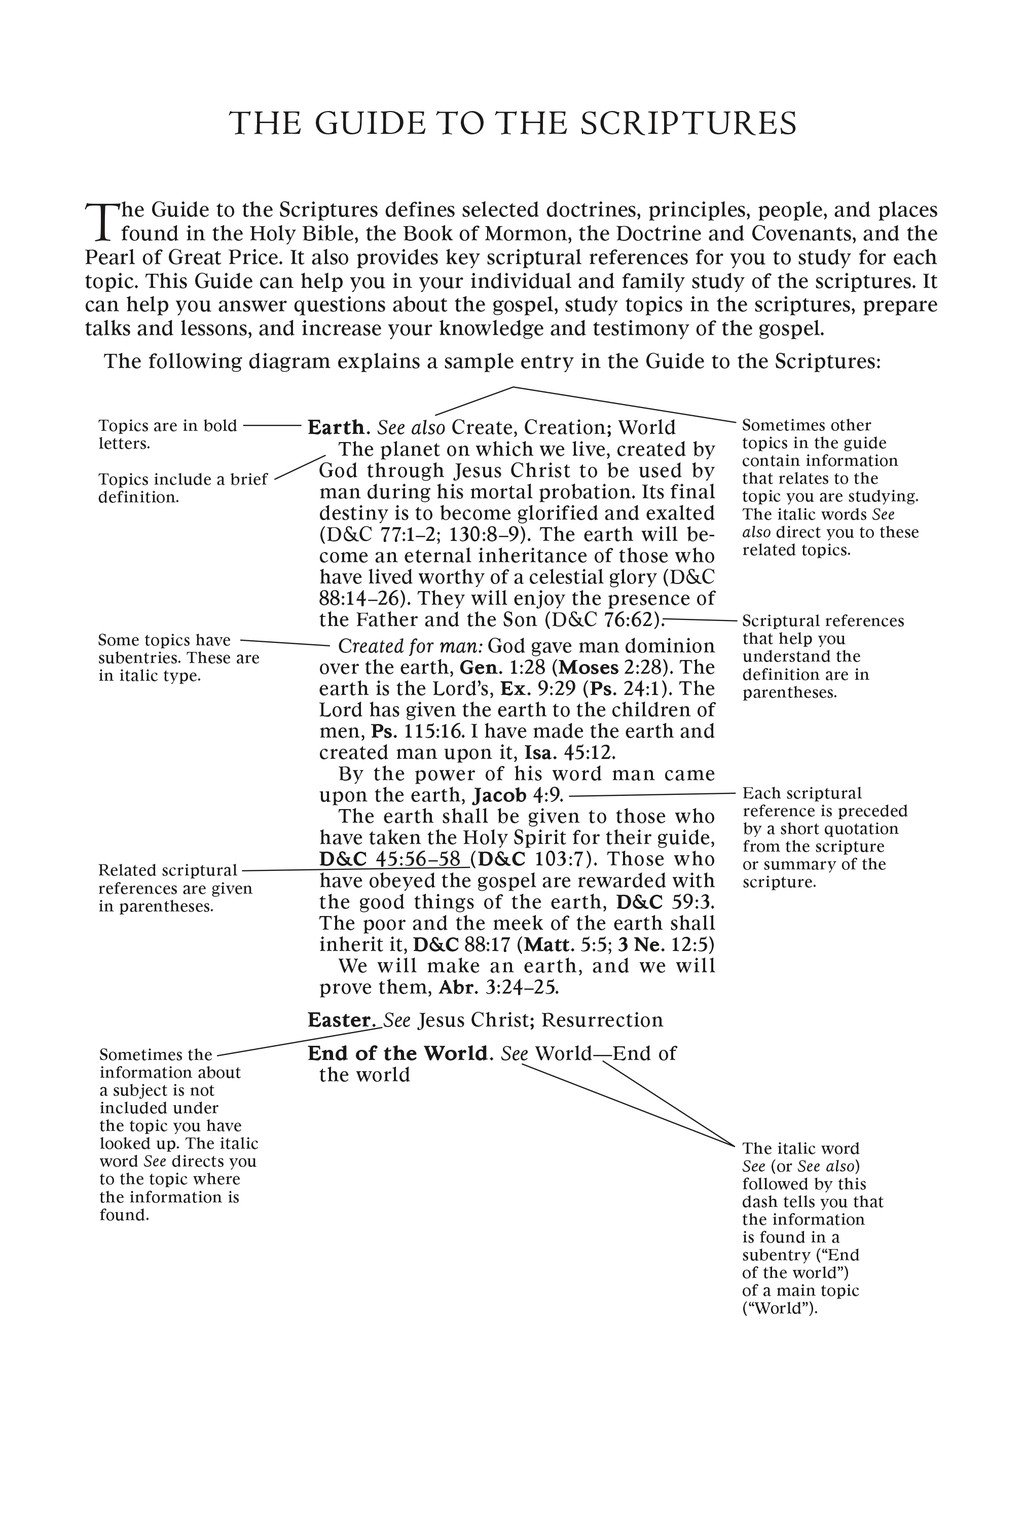 Guide to the Scriptures